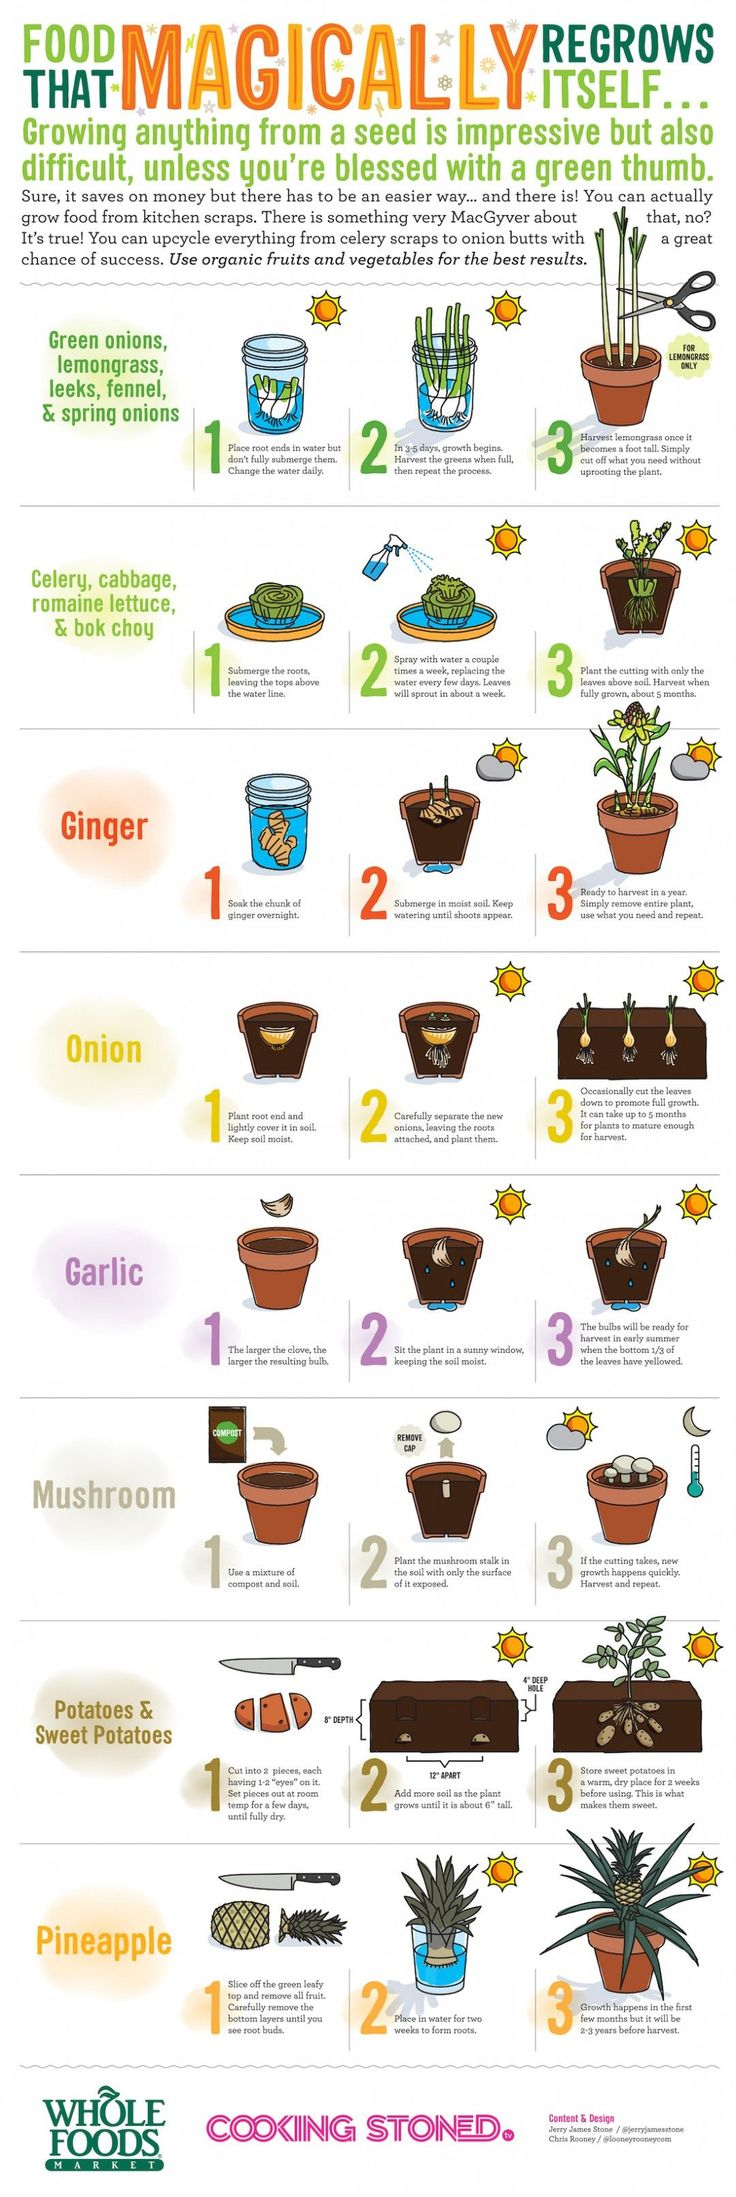 These are 20 clever must save gardening tips & hacks to use in the garden.   How to Grow Superb Summer Squash   Diapers Retain Moisture   Keep Plants Watered for Days with Nothing But Paper Towels   line all the pots with coffee filters   Make eggshell seedling pots to sprout your ...